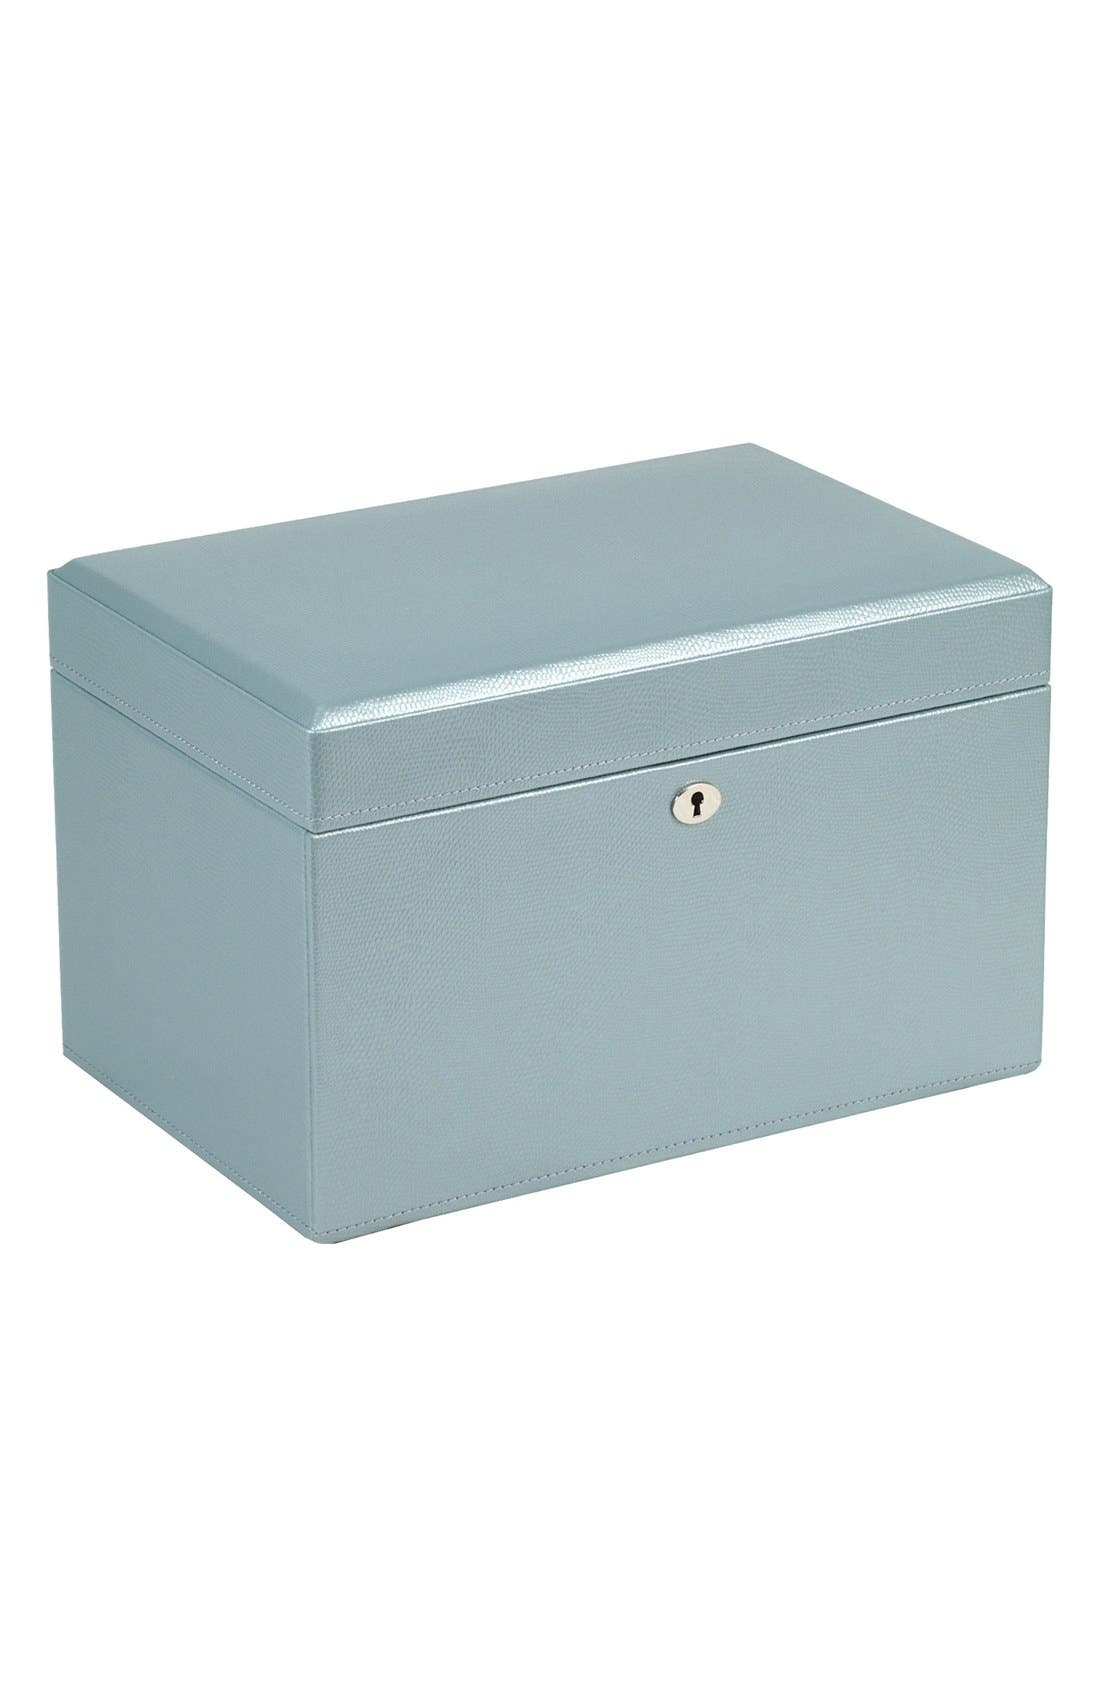 London Medium Jewelry Box,                             Alternate thumbnail 4, color,                             ICE BLUE